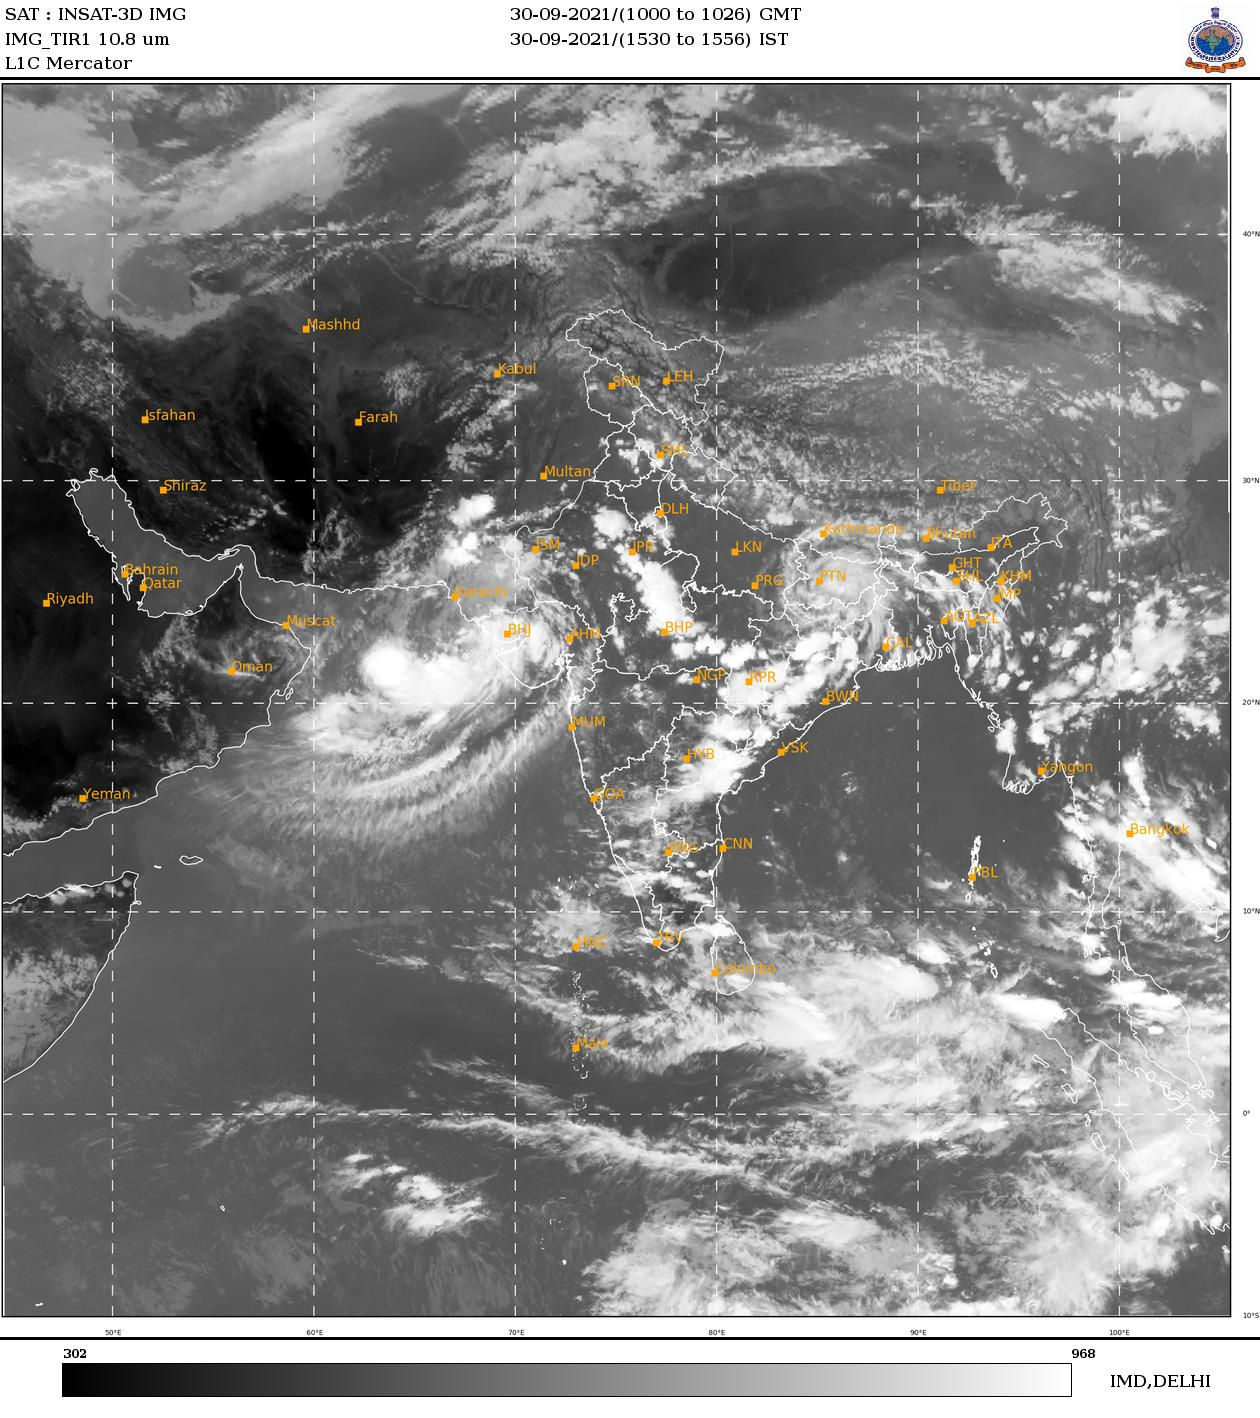 Rainy condition is expected to enhance over most parts of Sri Lanka during October 1 and  and 2 October due to low level atmospheric disturbance in the vicinity of Sri Lanka.